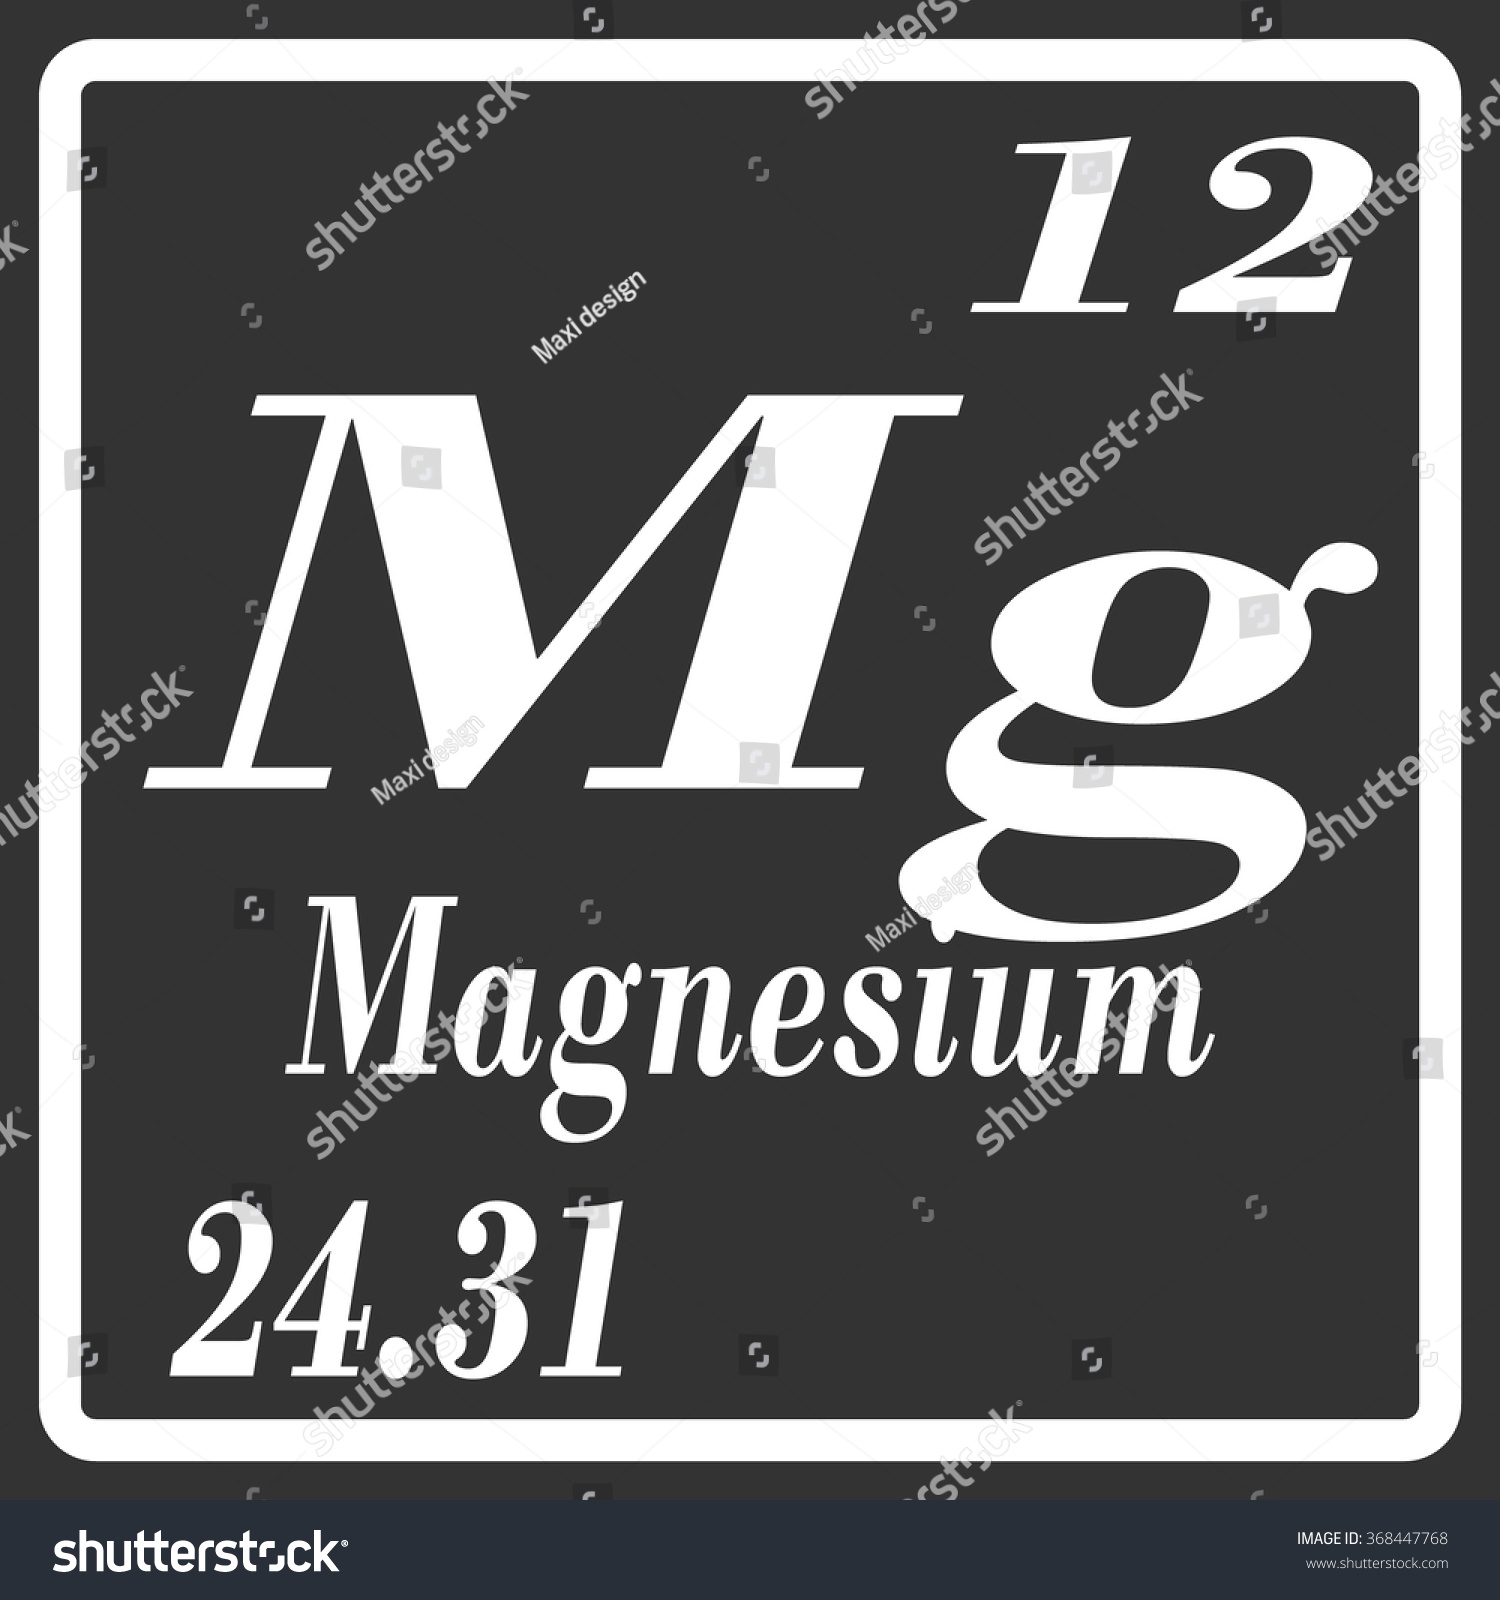 Periodic table of elements magnesium image collections periodic periodic table of elements magnesium choice image periodic table periodic table of elements magnesium image collections gamestrikefo Gallery